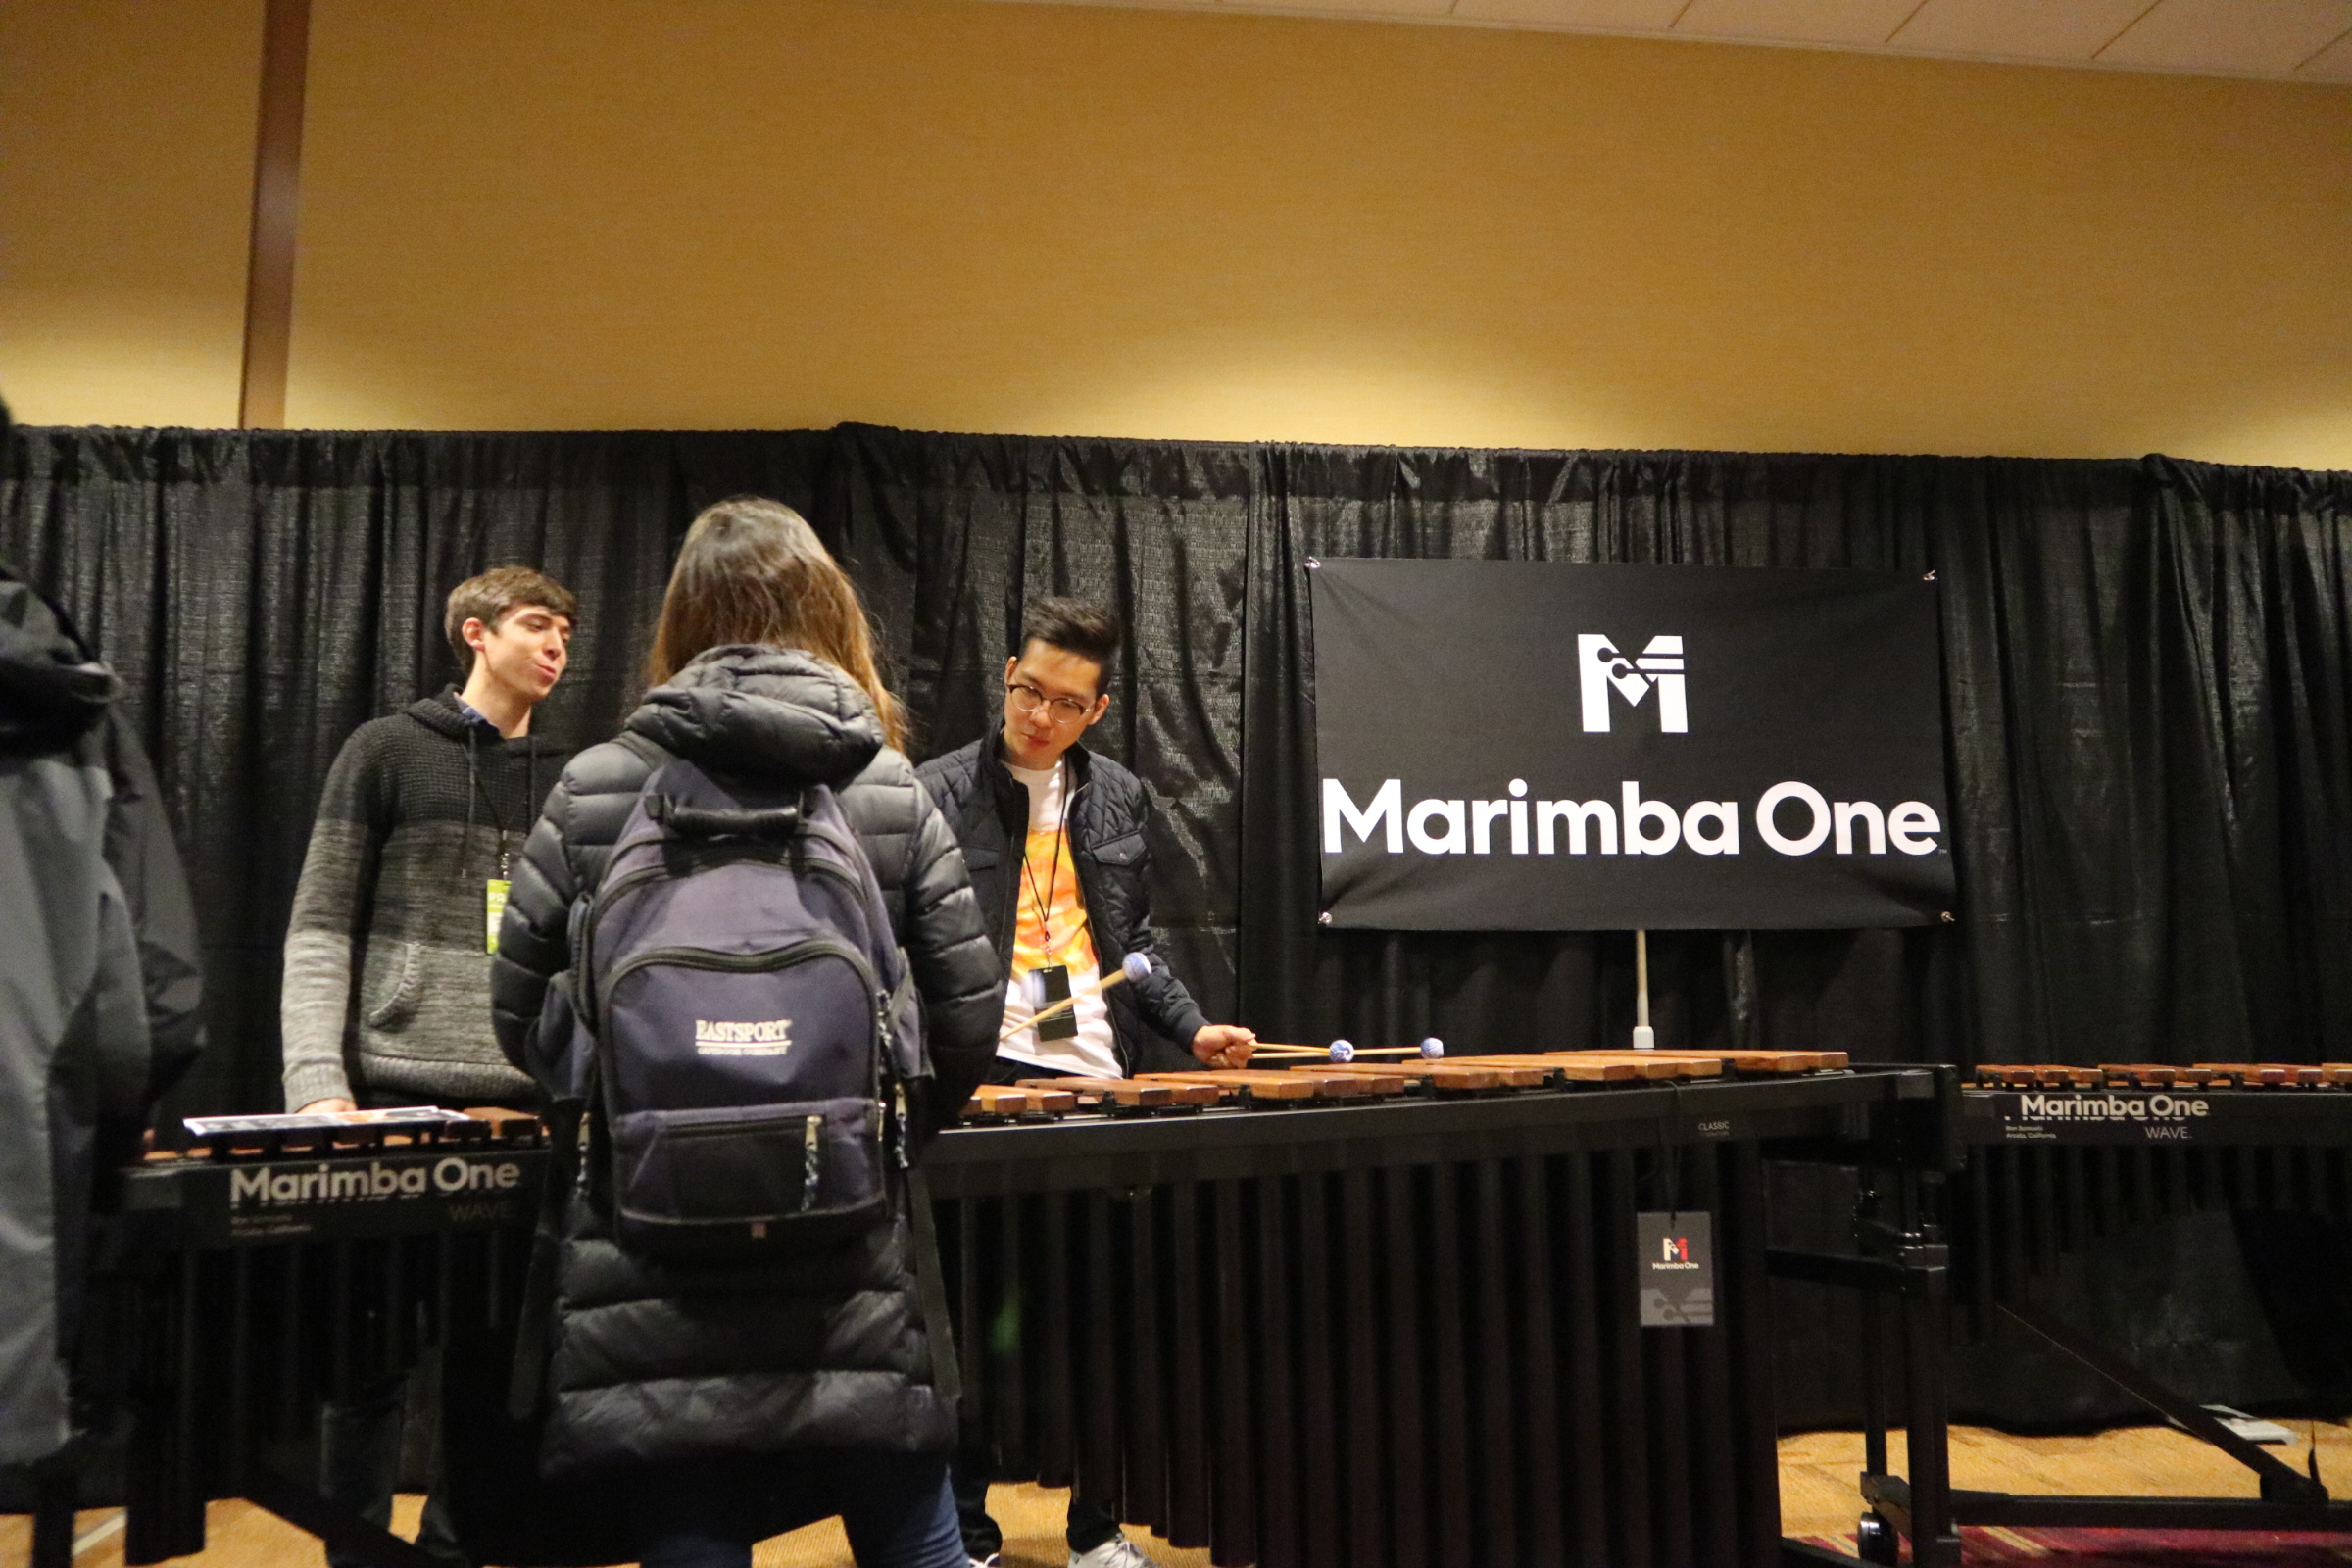 Presenting the Marimba One Wave